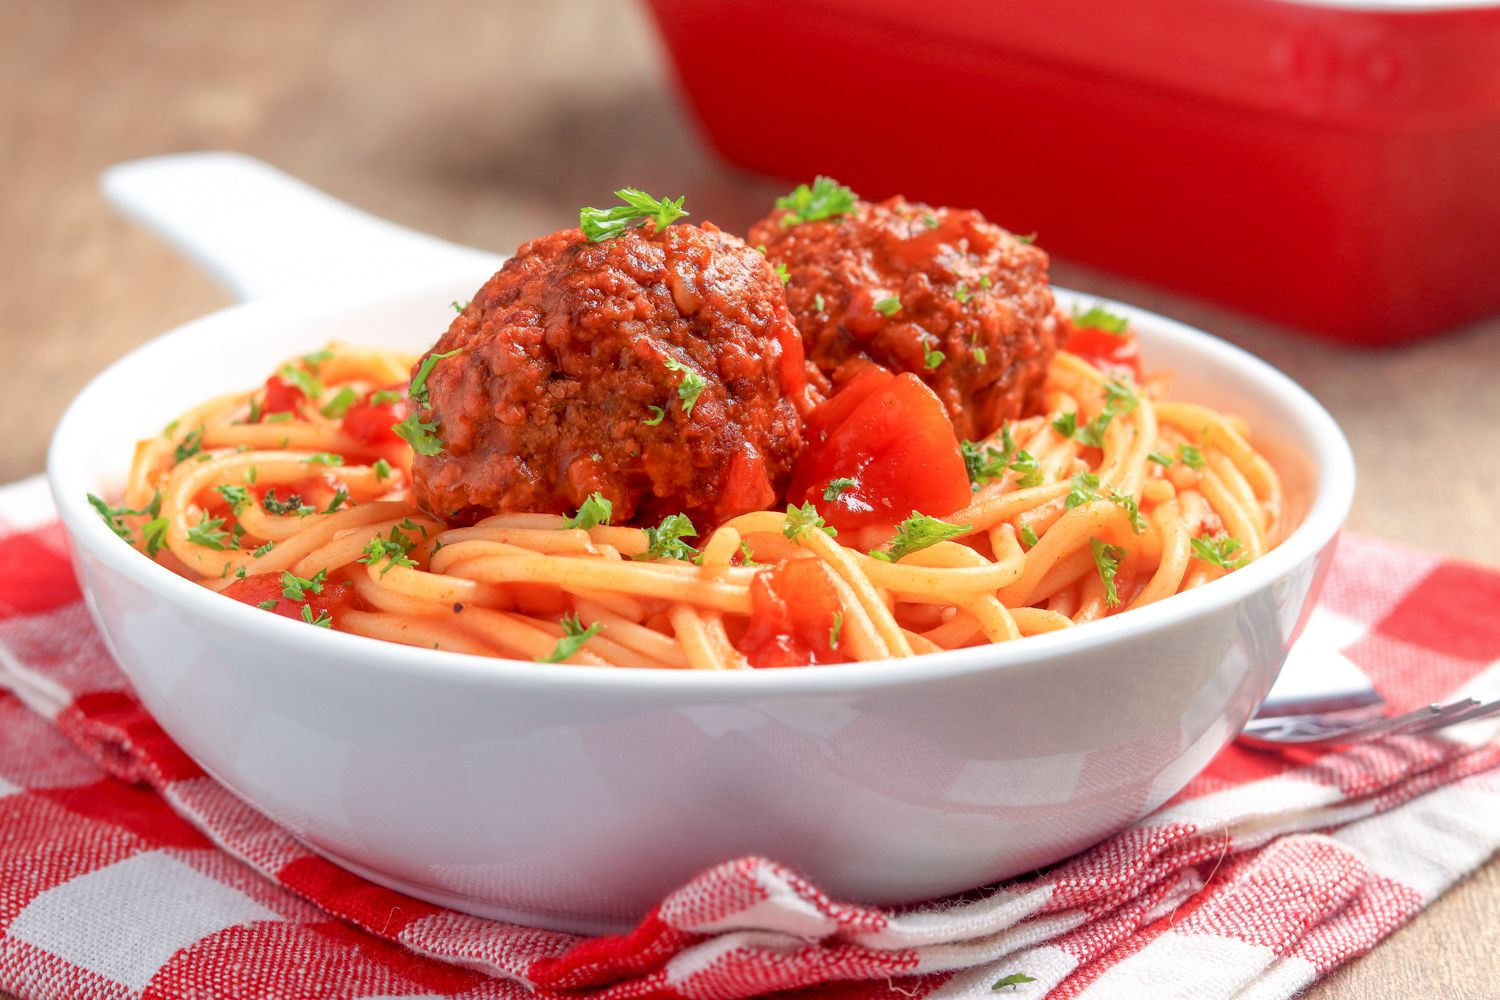 Appetizers and Side Dishes. My plan: homemade spaghetti and meatballs for day leftover meatballs stuffed into biscuits for day Add a salad or steamed veggies.